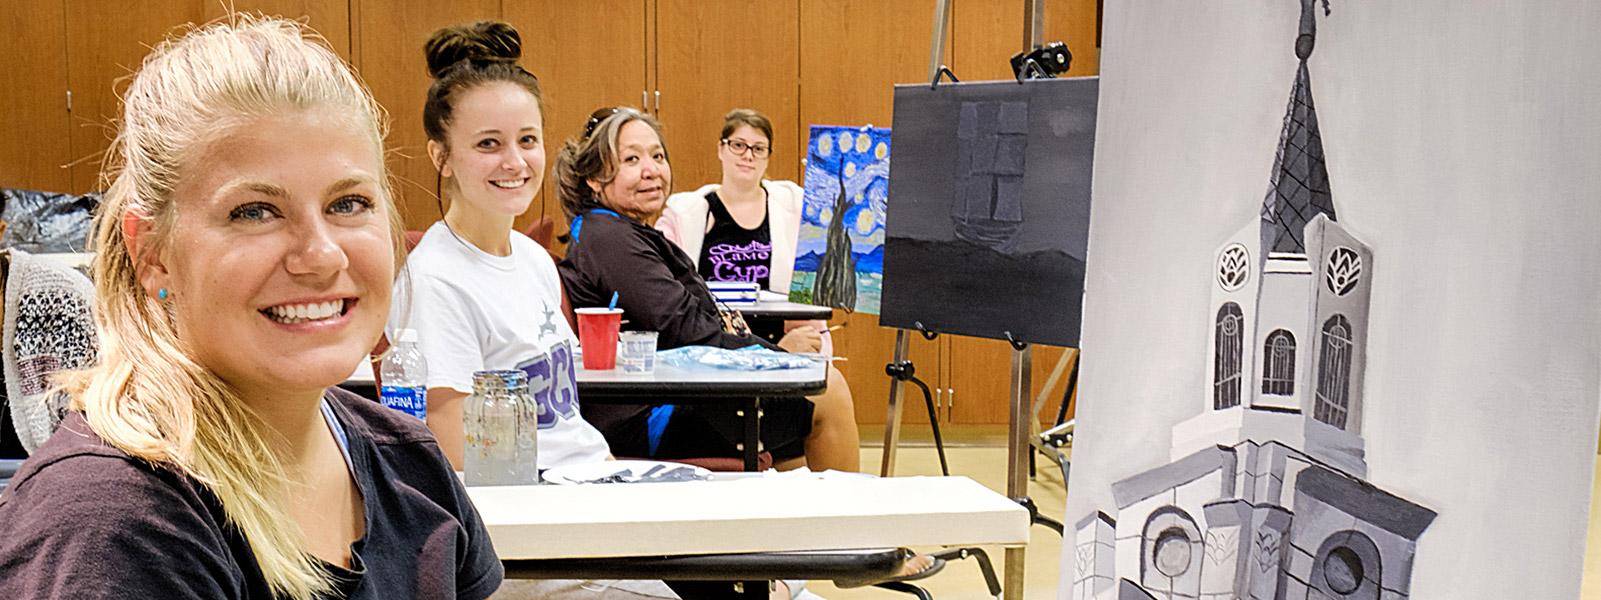 four female students in painting class